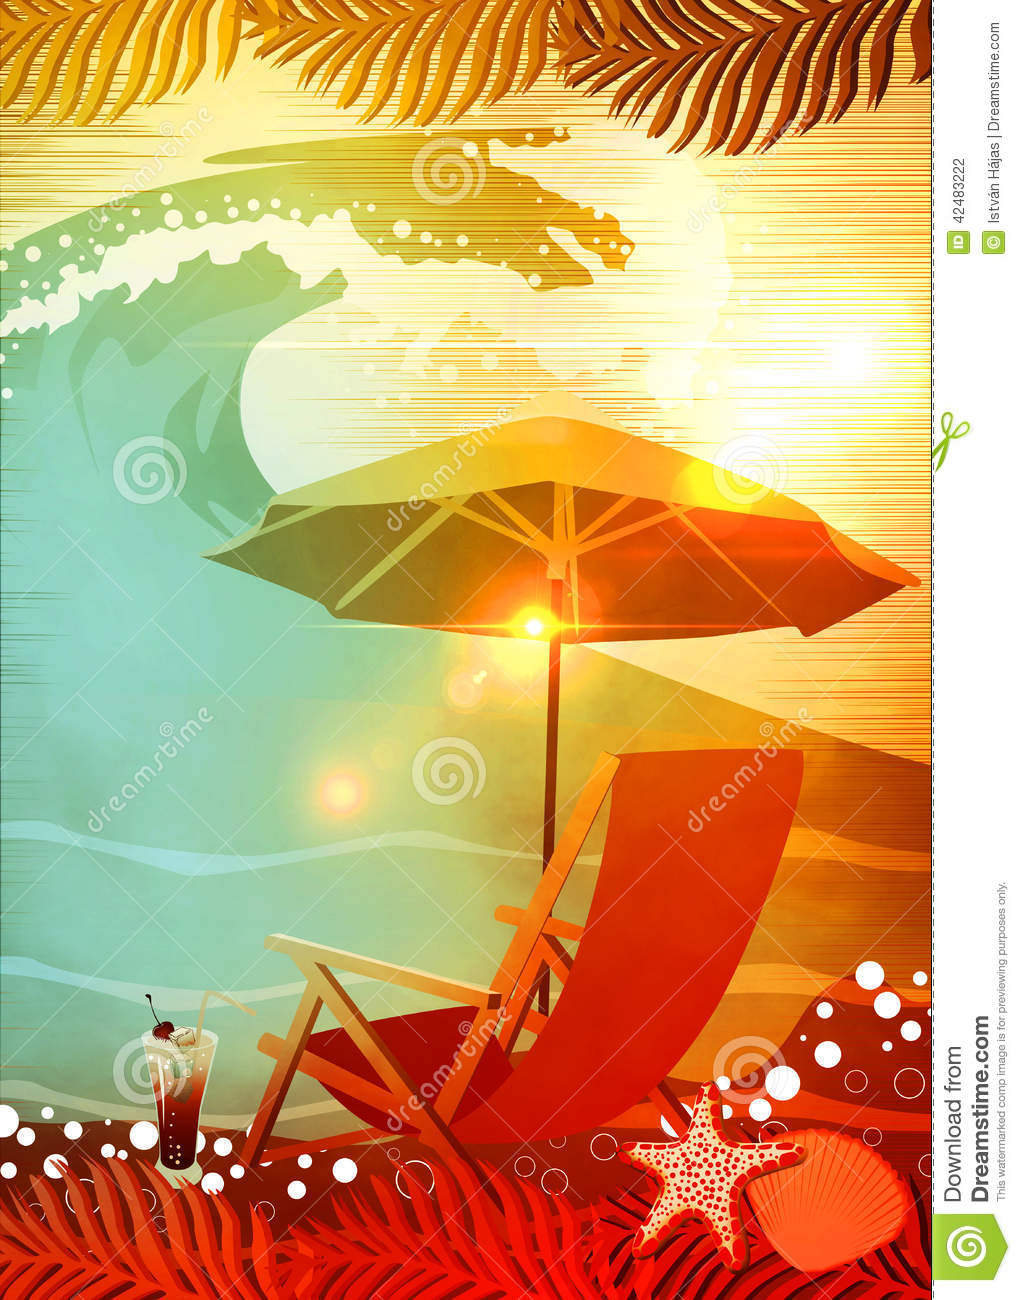 sunbathing in beach background stock illustration image dog sunbathing clipart dog sunbathing clipart